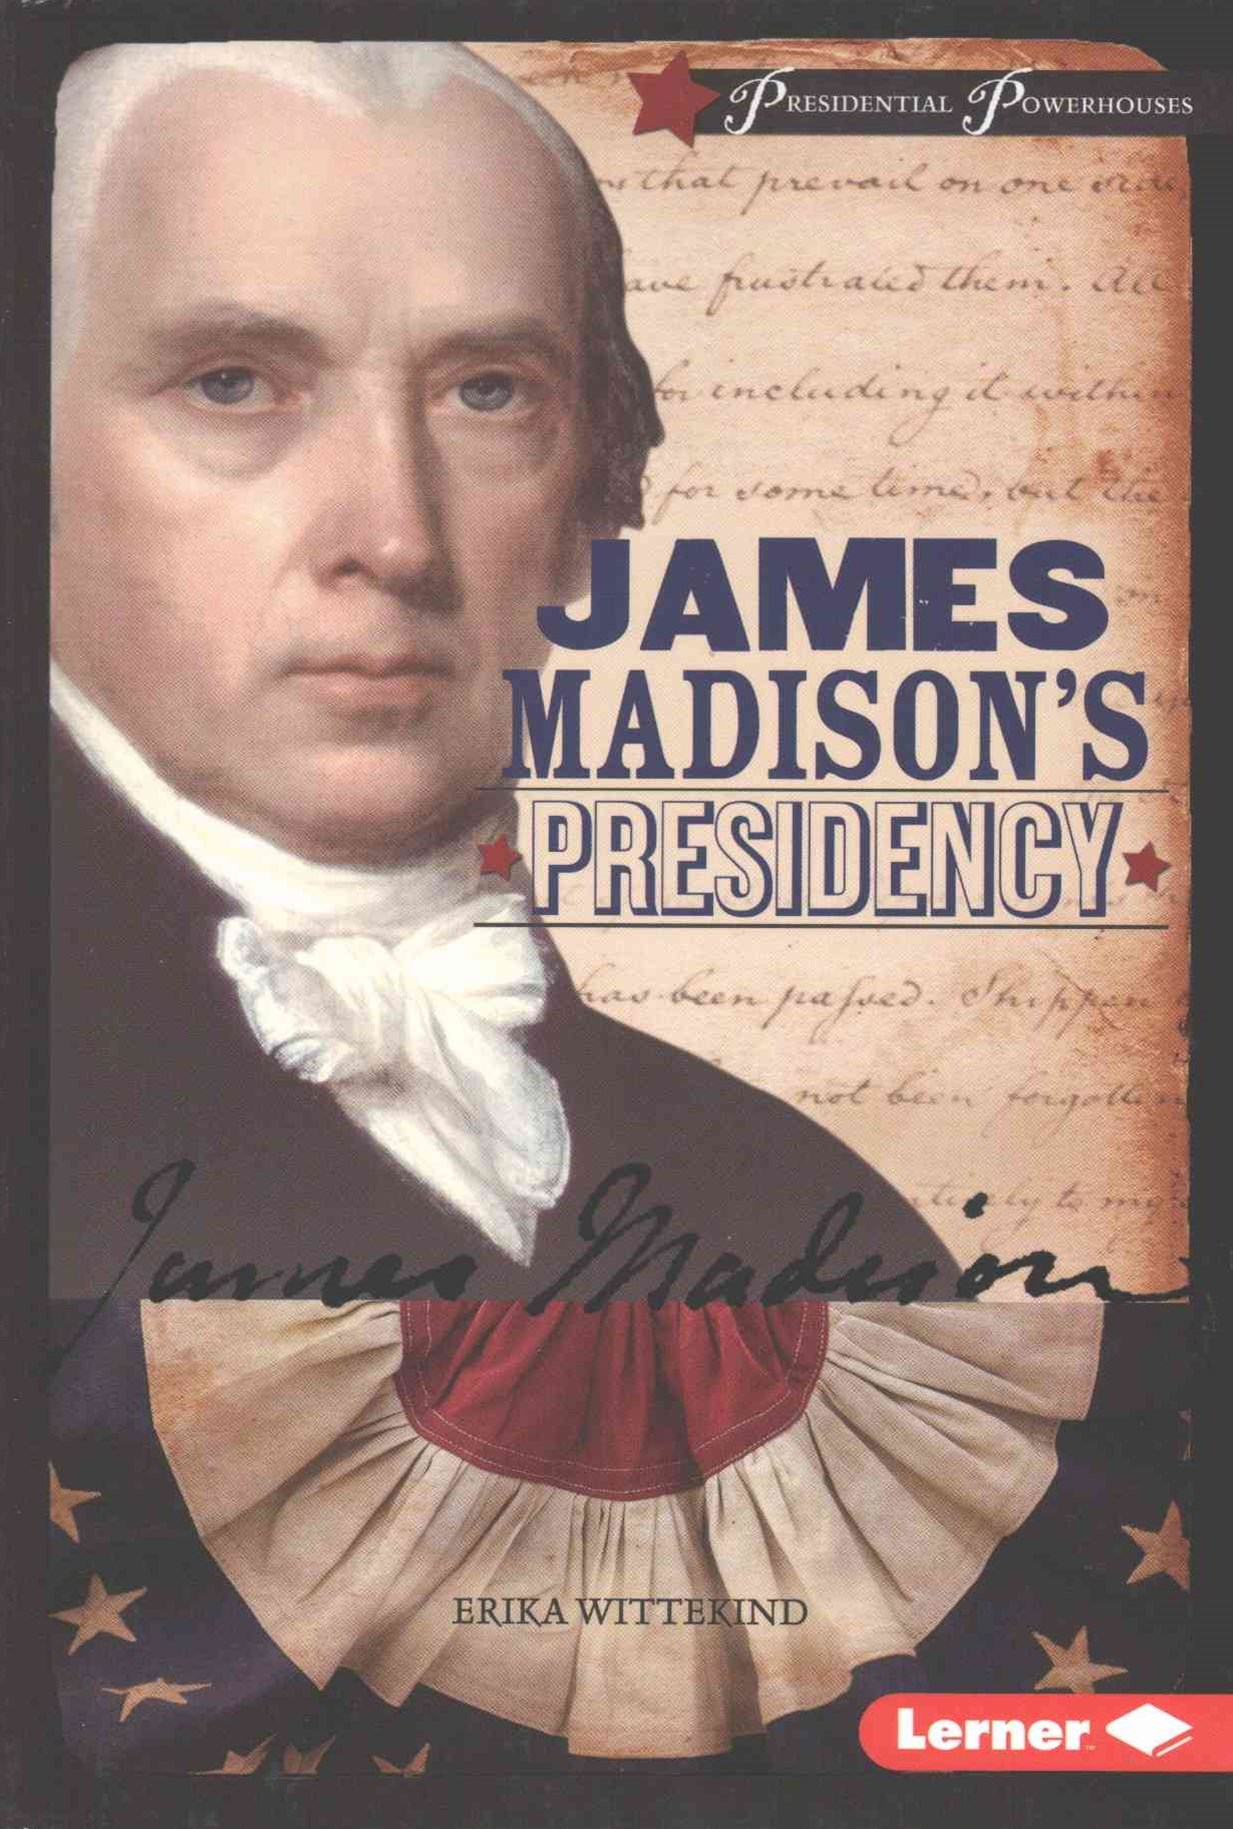 James Madison's Presidency